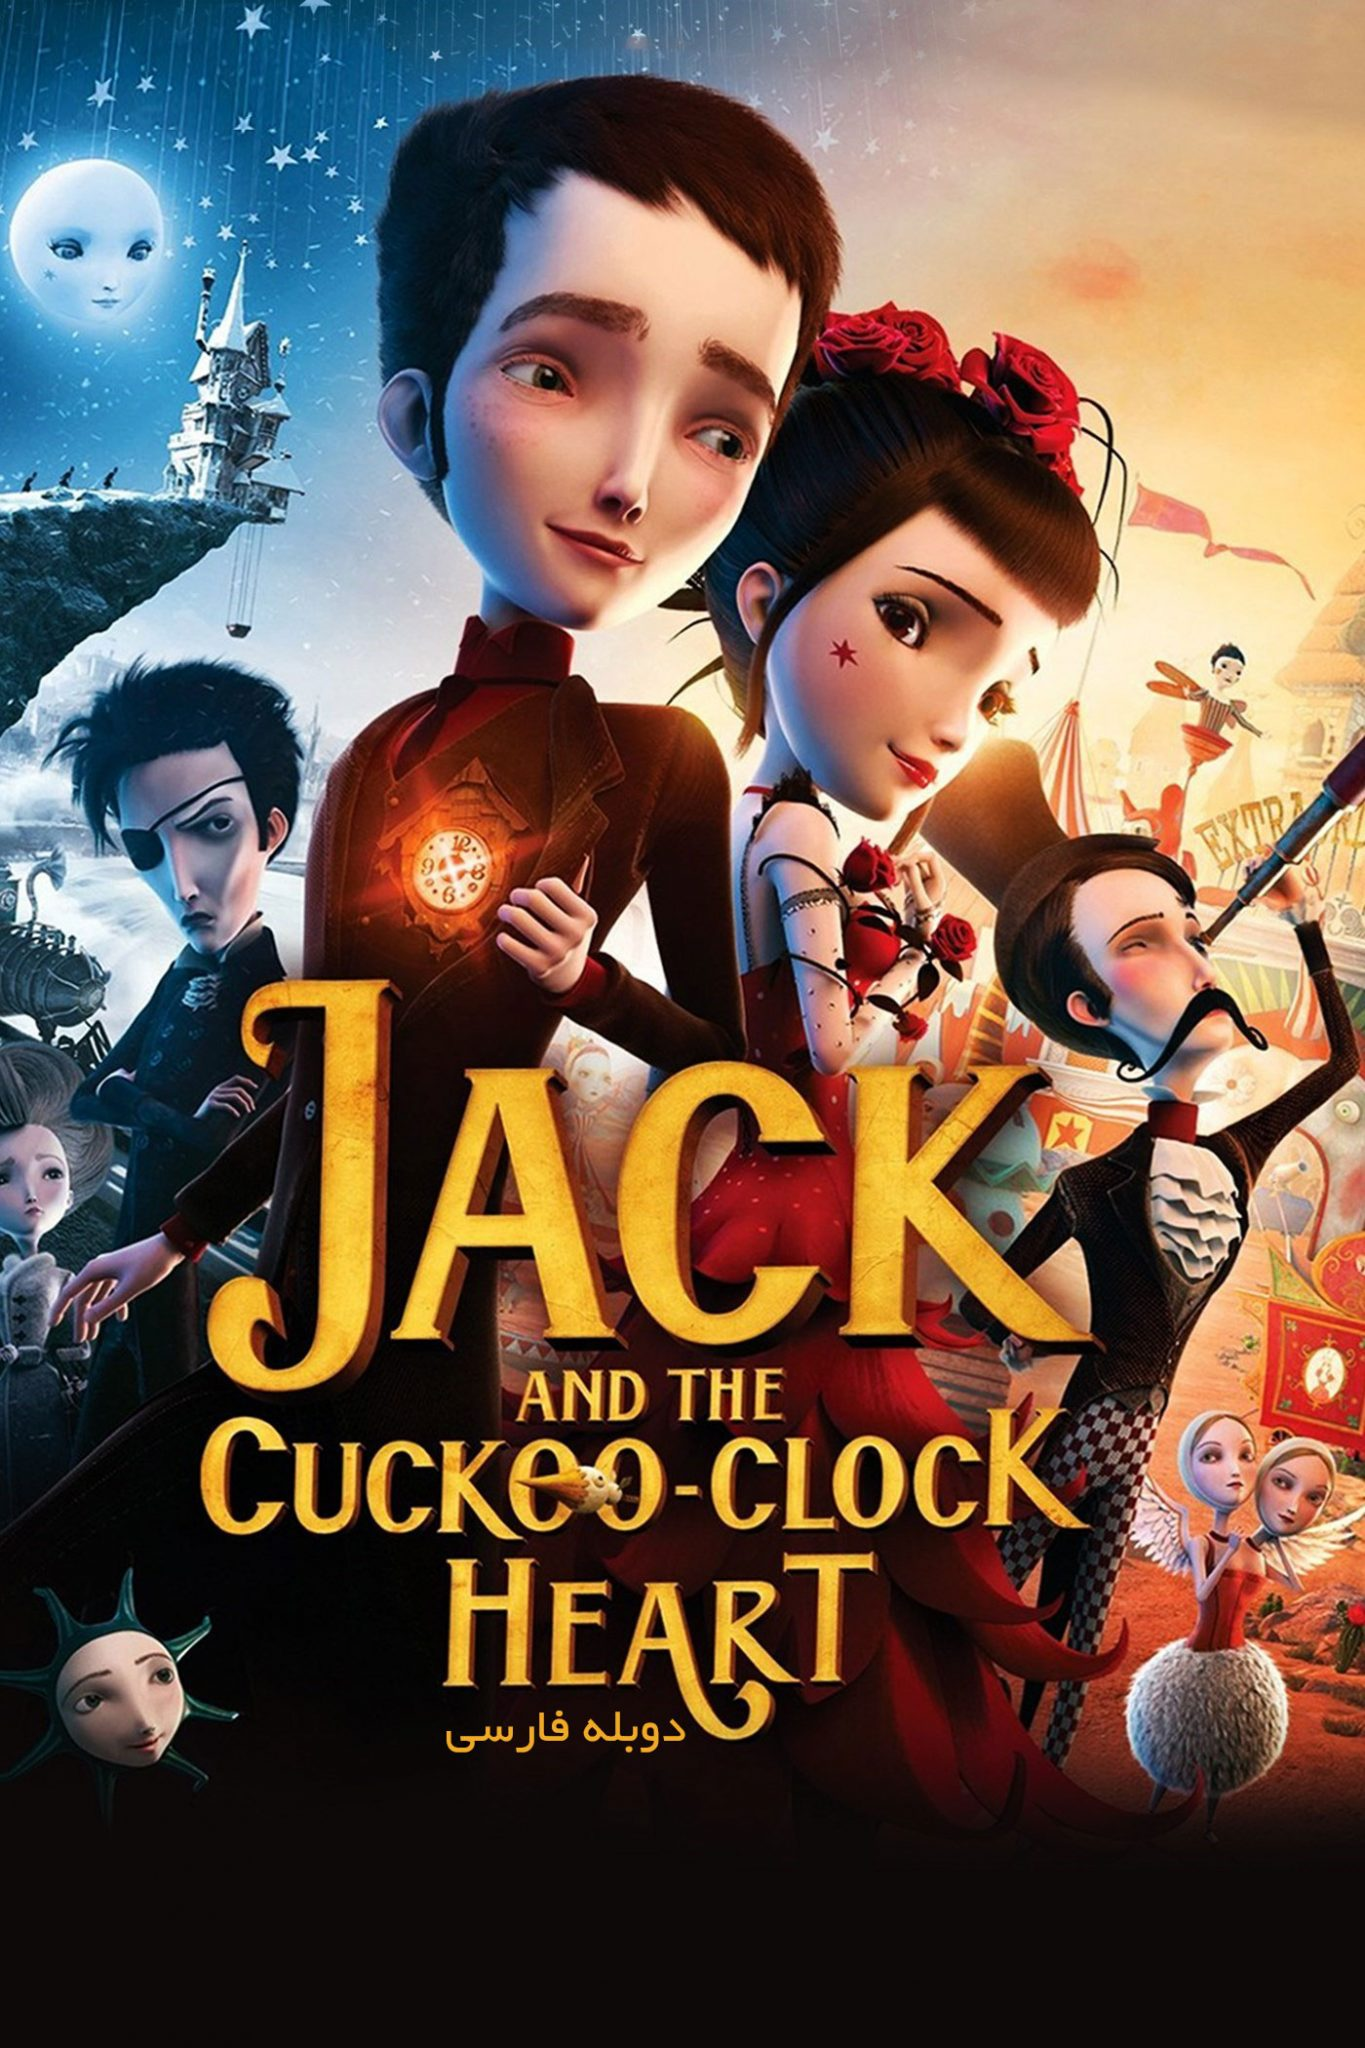 Jack and the Cuckoo Clock Heart - Jack and the Cuckoo Clock Heart